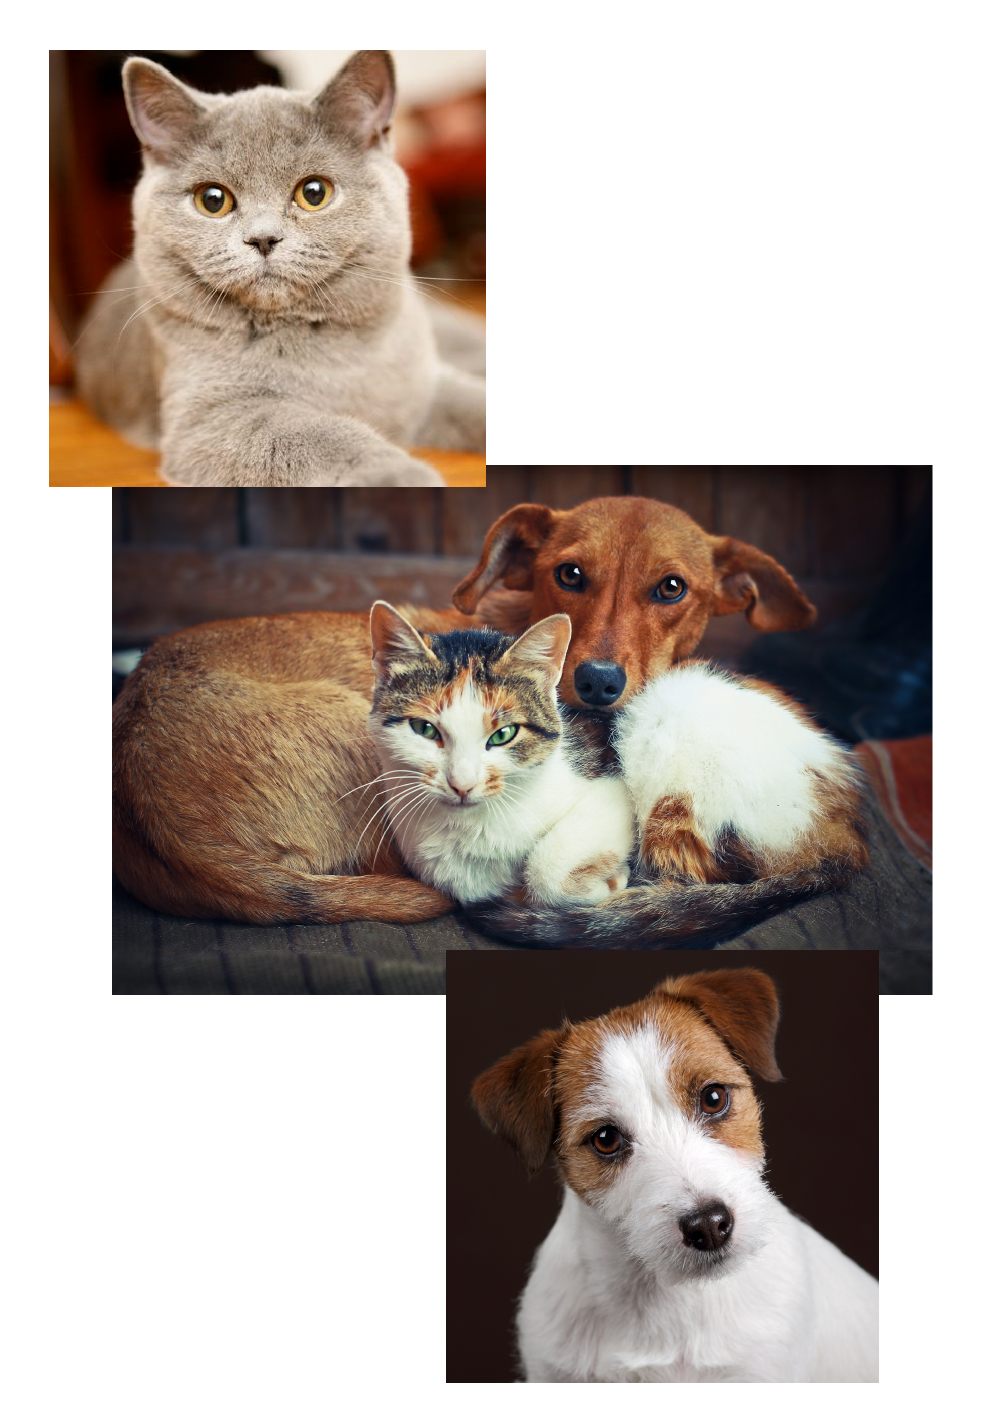 Collage of cat and dog images